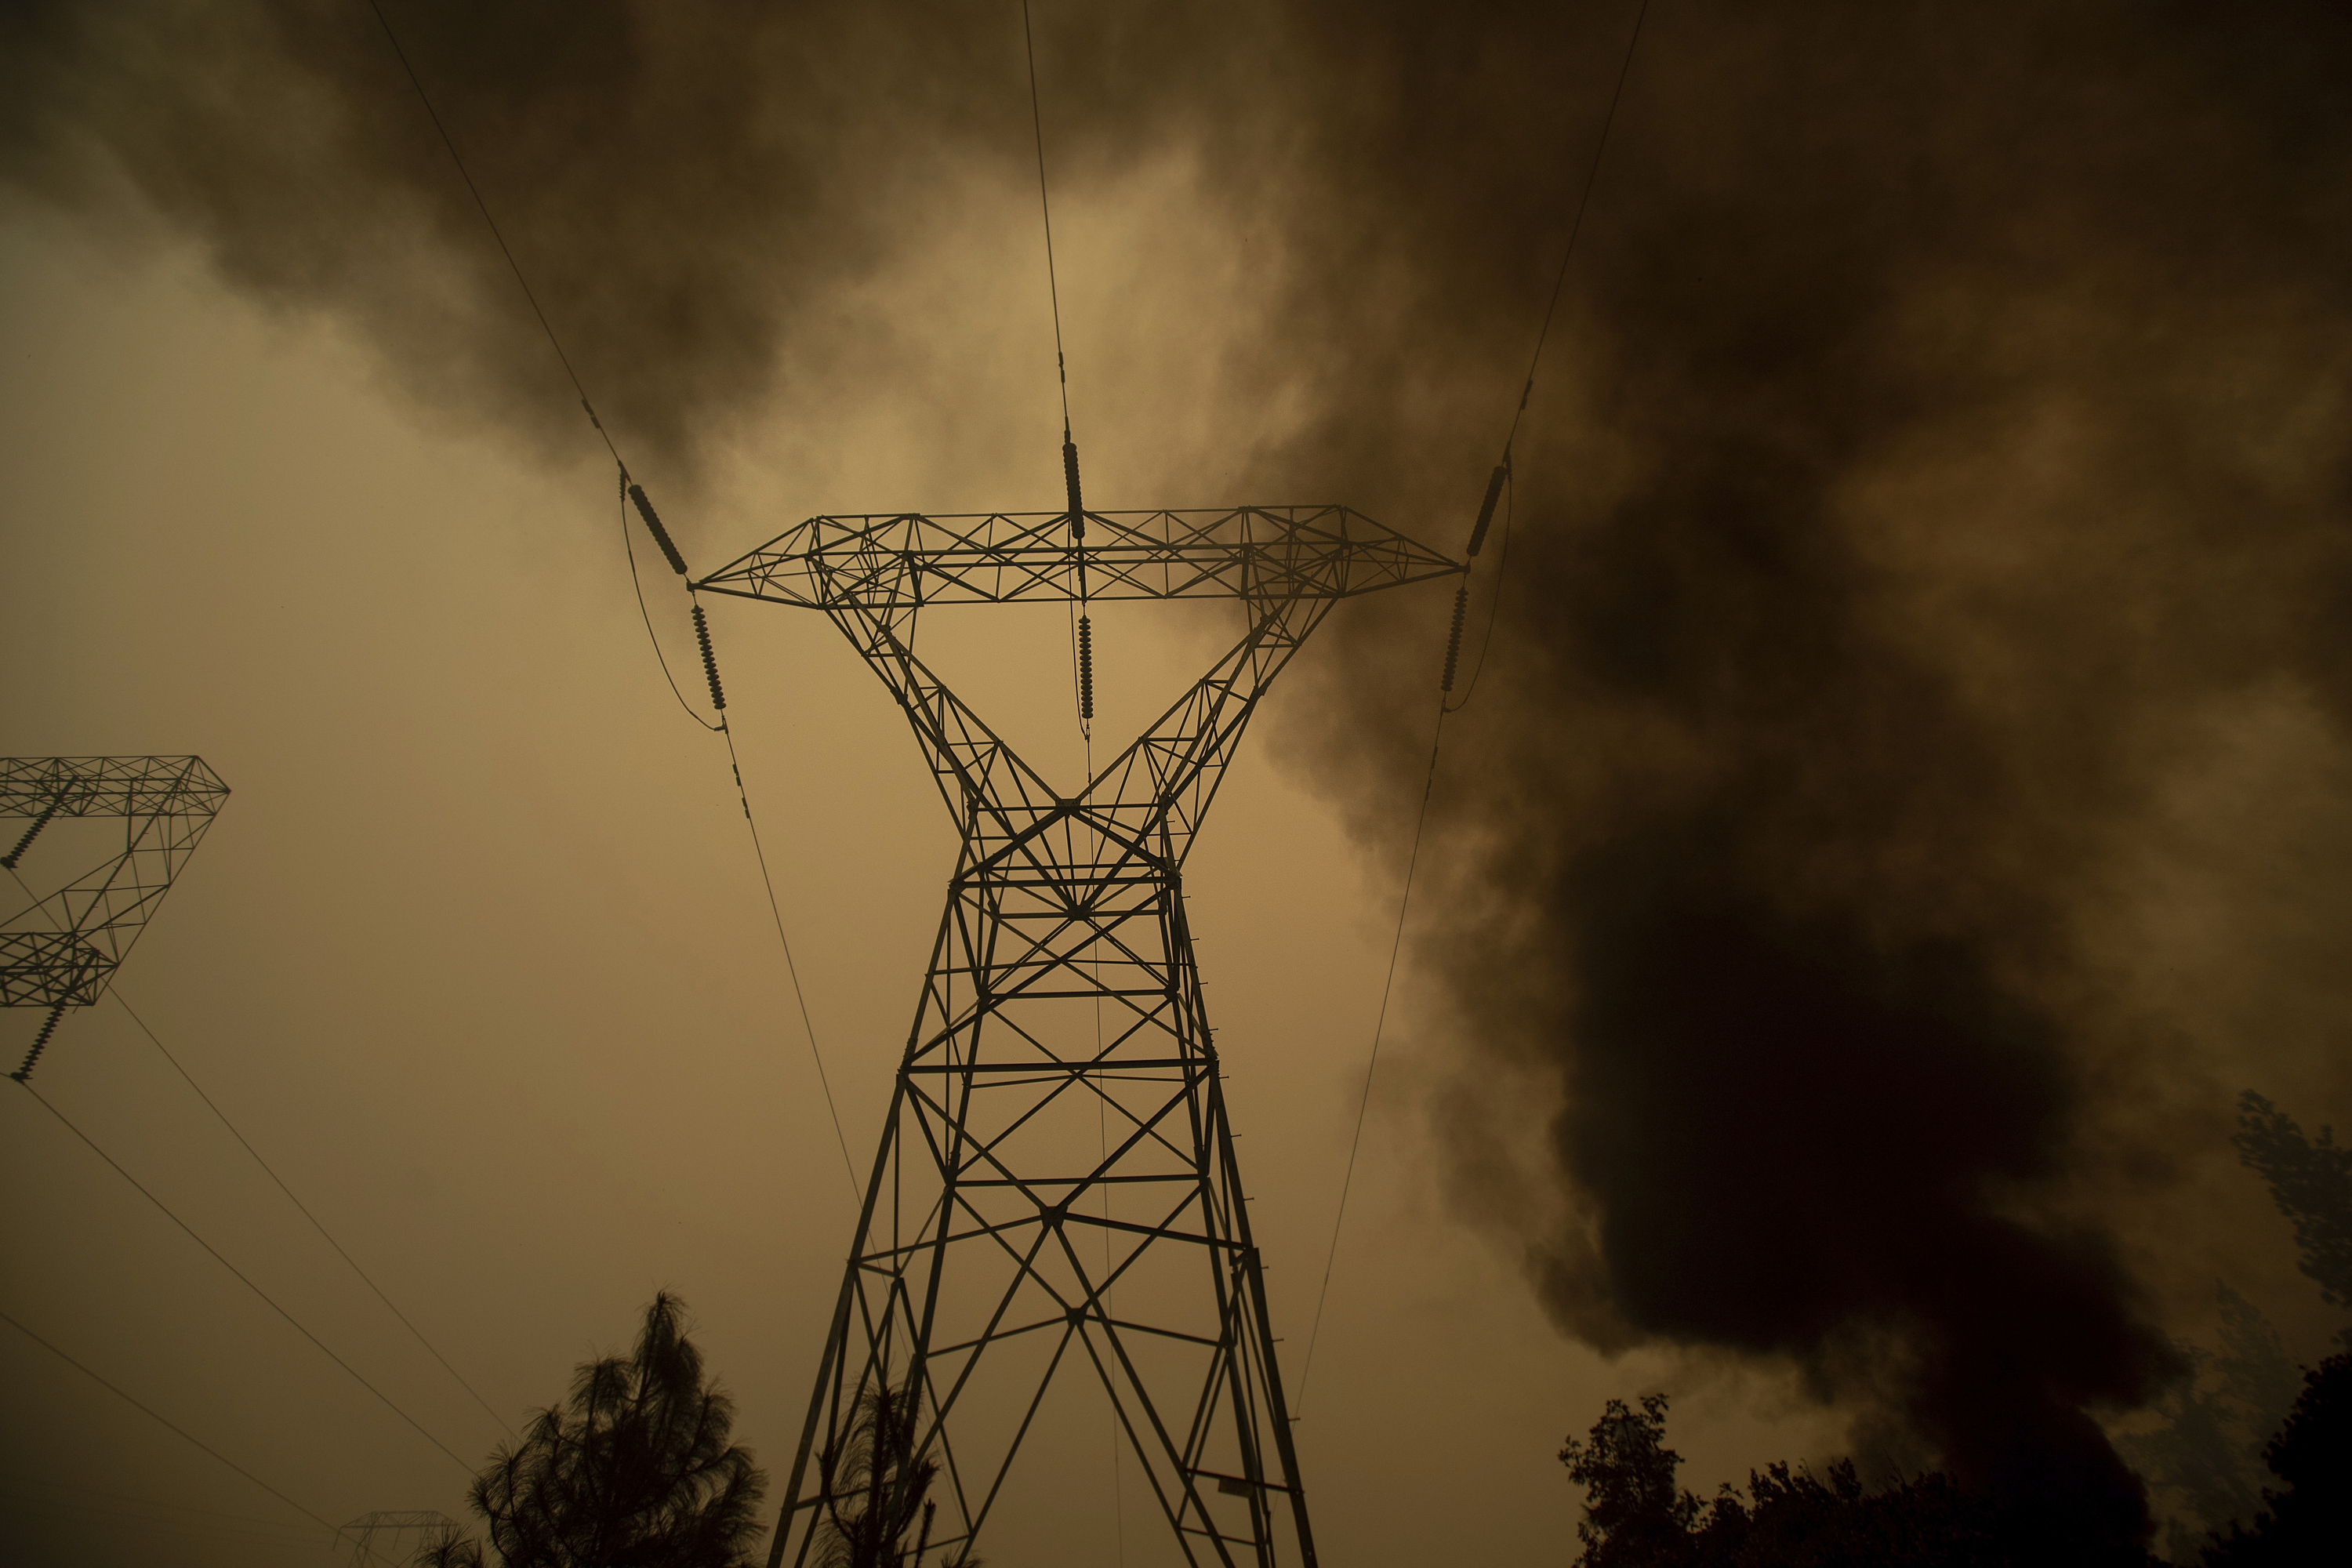 Smoke billows around power transmission lines as the Camp Fire burns in Big Bend, Calif. on Nov. 9, 2018.